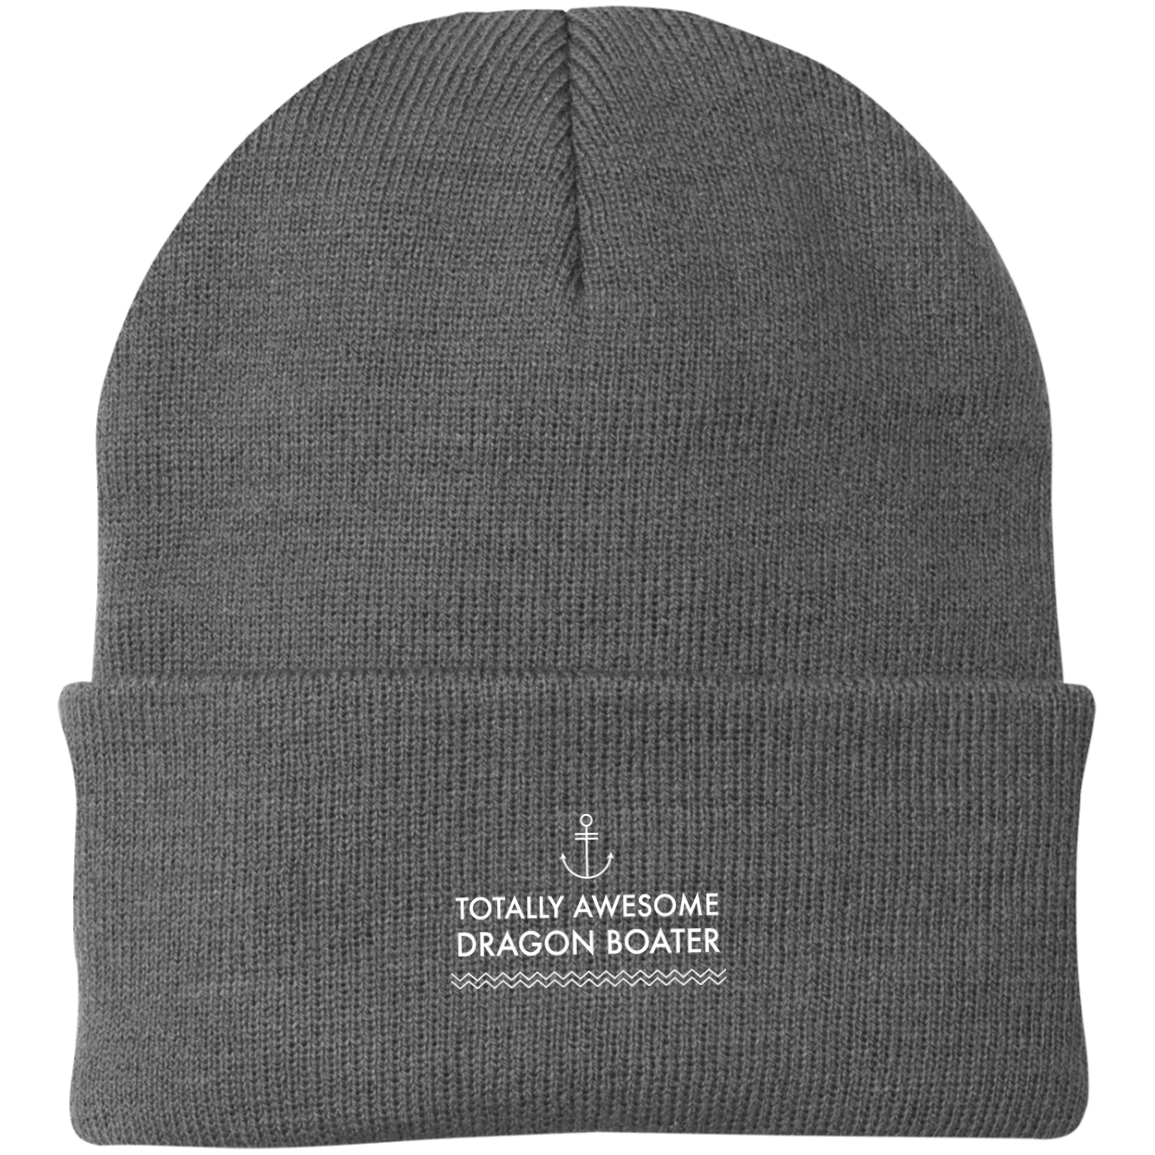 Totally Awesome Dragon Boater Port Authority Knit Cap